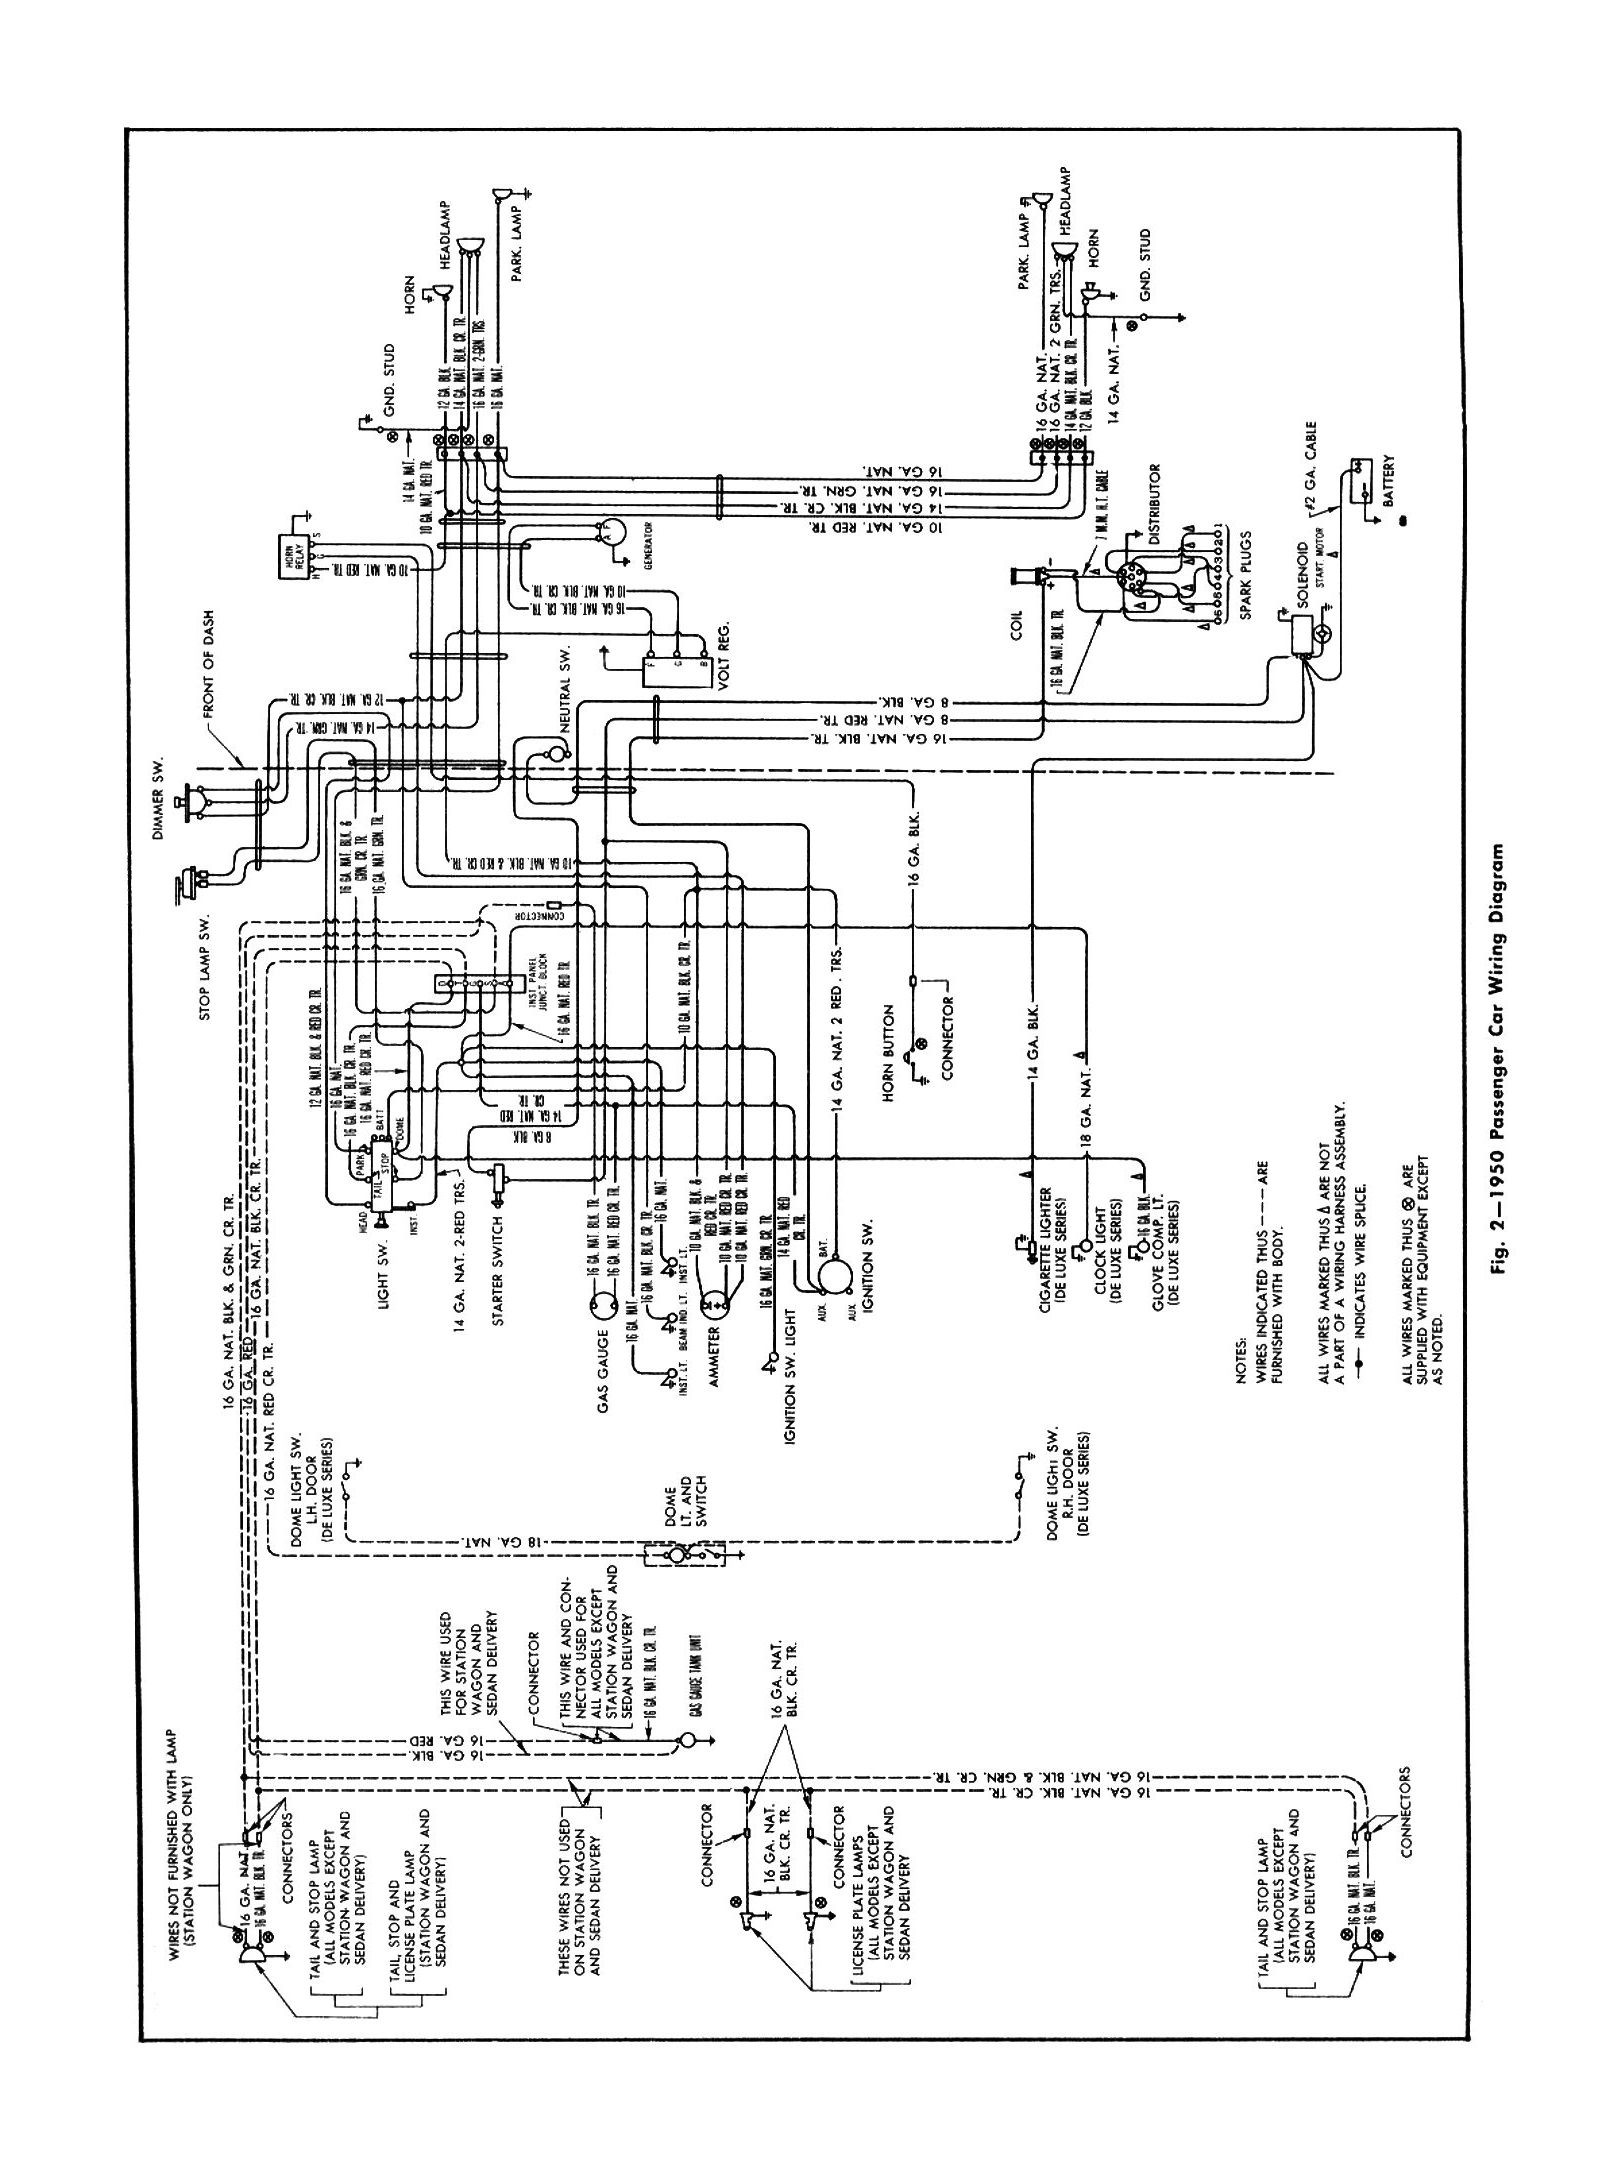 1958 chevy bel air wiring harness diy enthusiasts wiring diagrams u2022 rh broadwaycomputers us  1958 chevy truck ignition switch wiring diagram